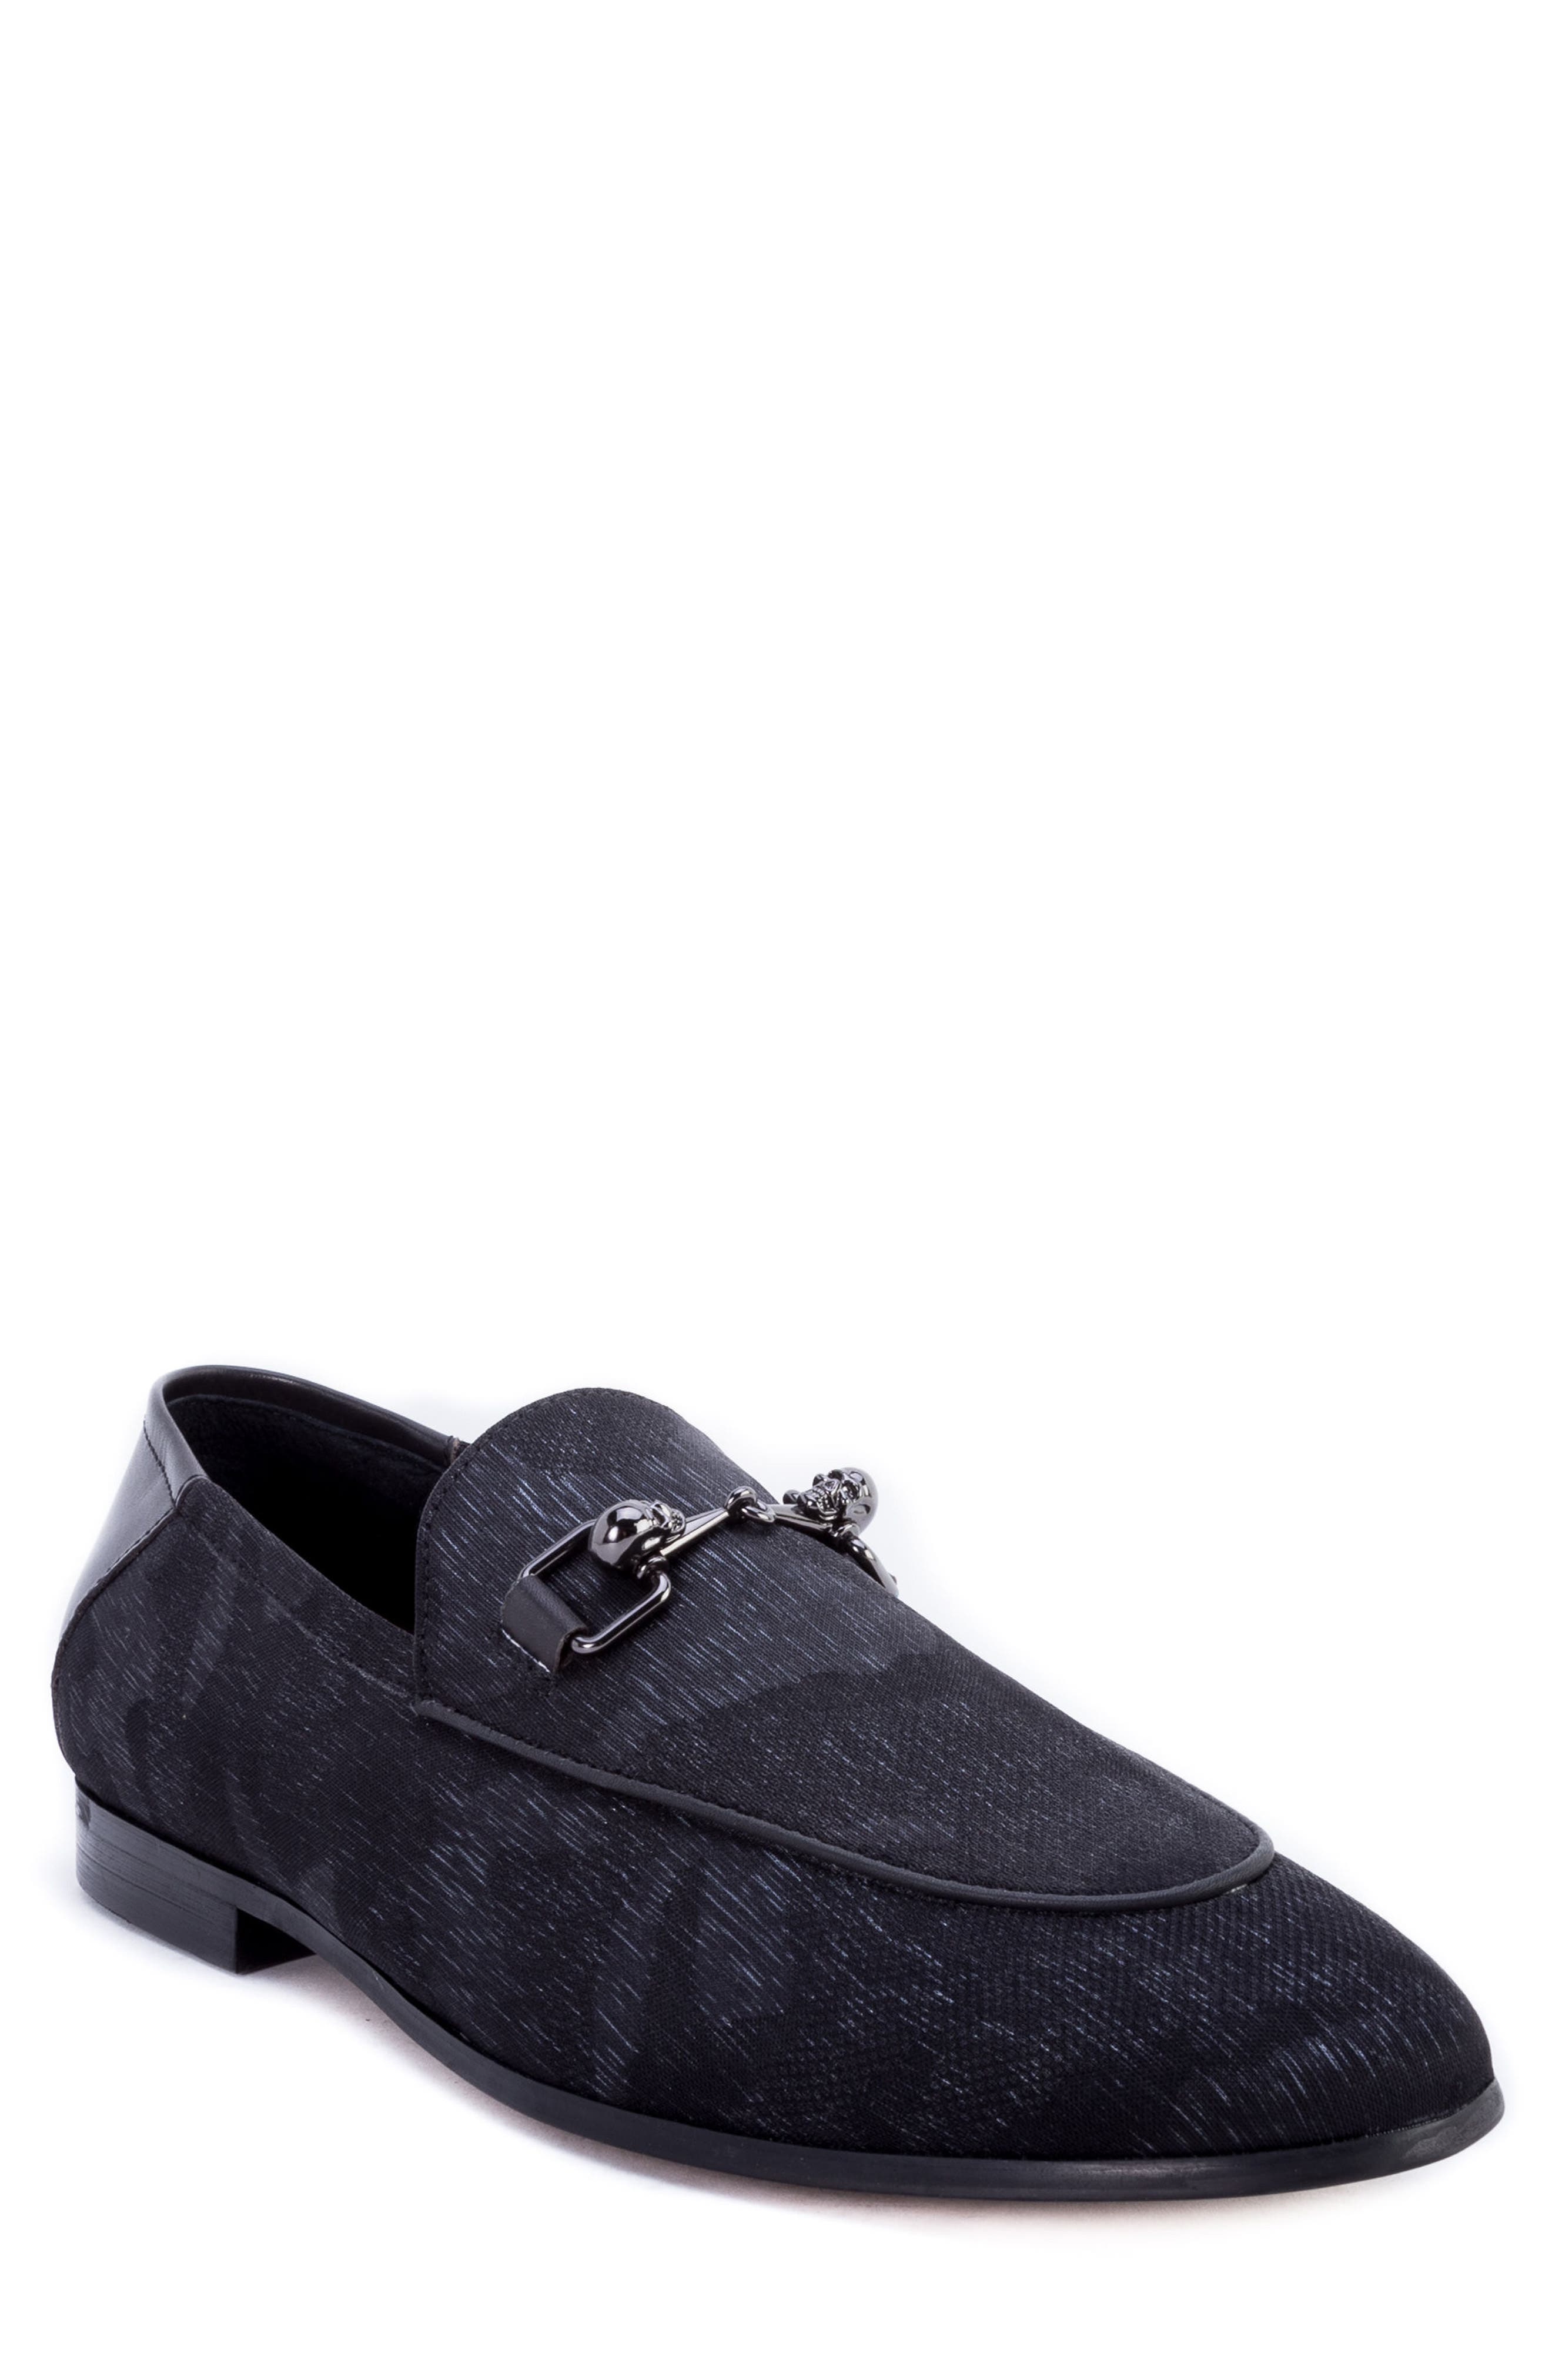 Barton Camouflage Bit Loafer,                             Main thumbnail 1, color,                             GREY FABRIC